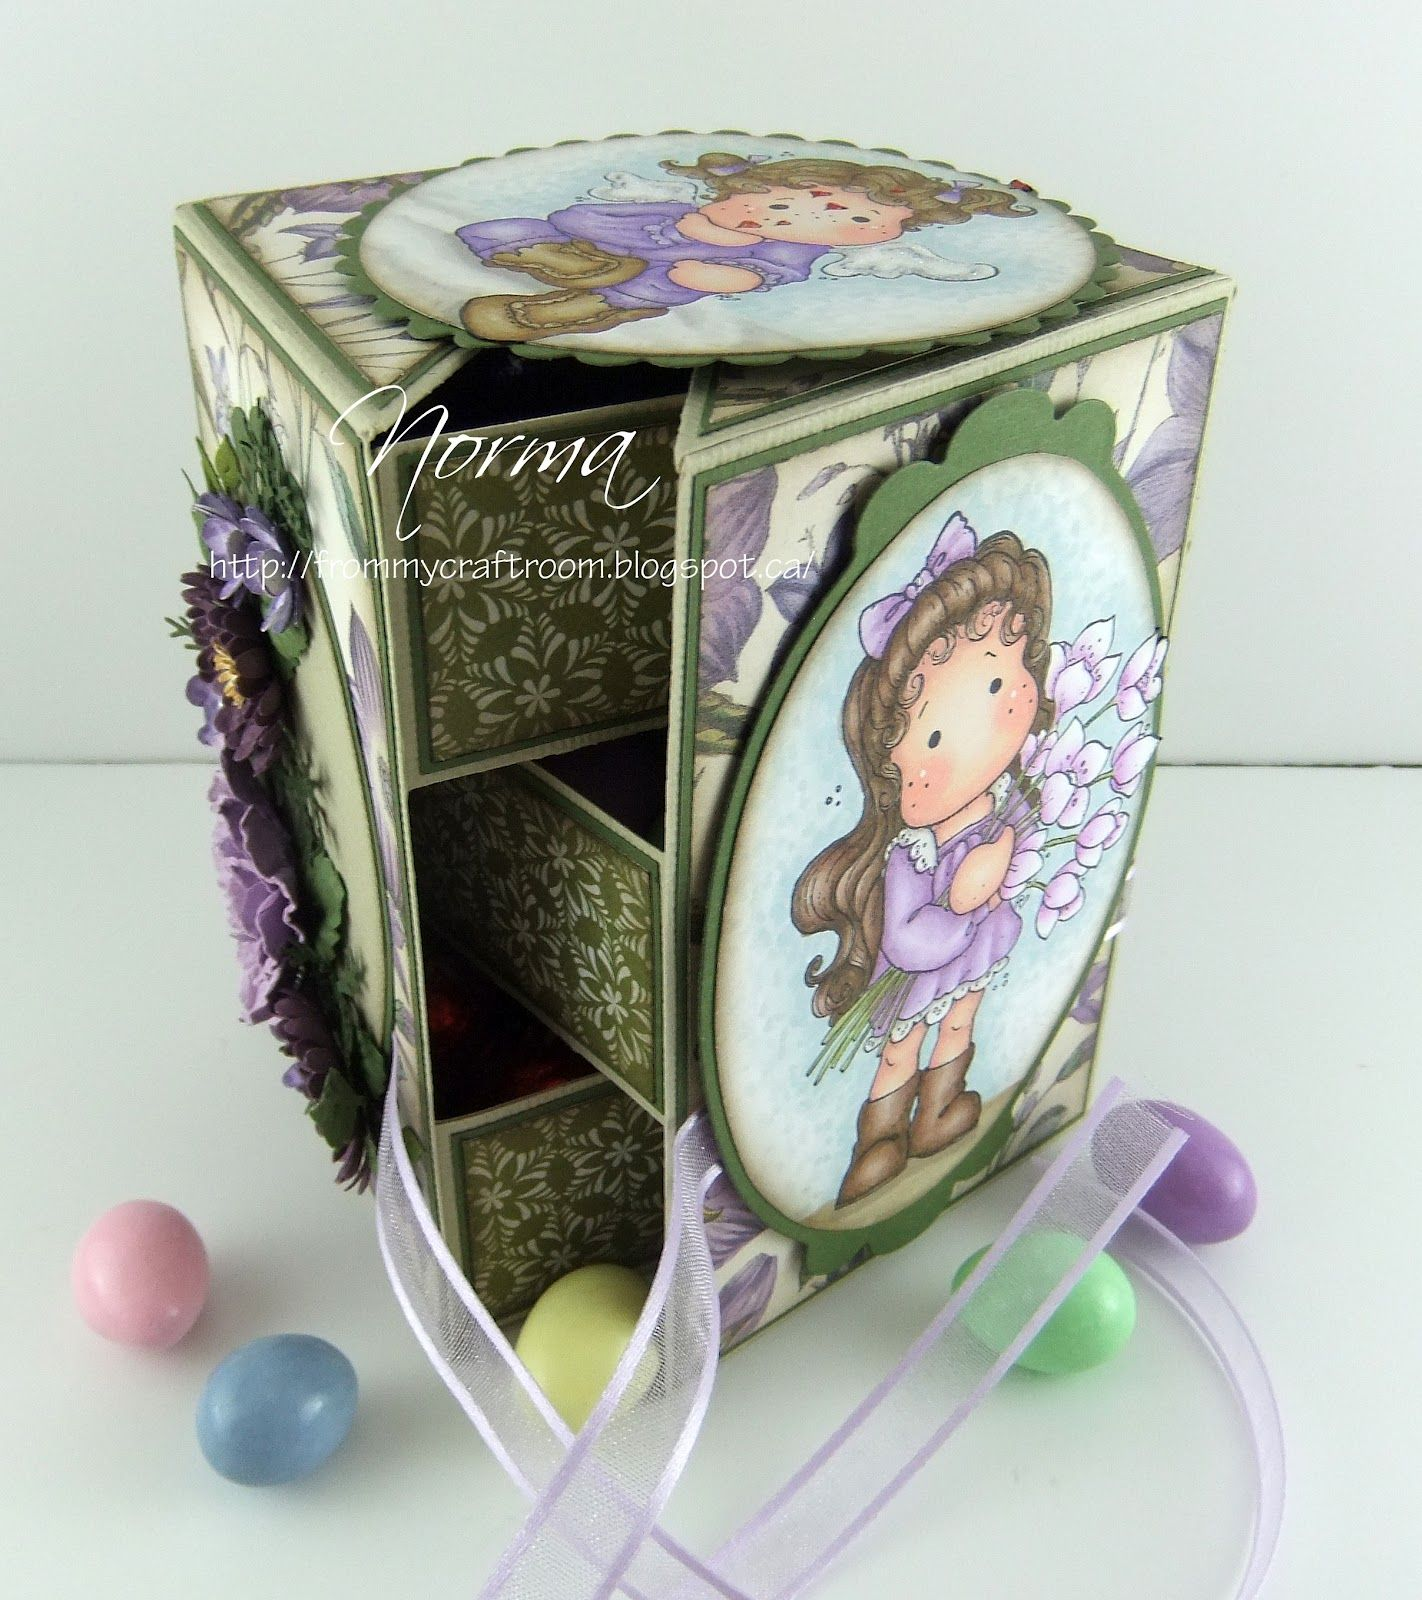 How to scrapbook a box - This Is A Tutorial On How To Make A Secret Box Like